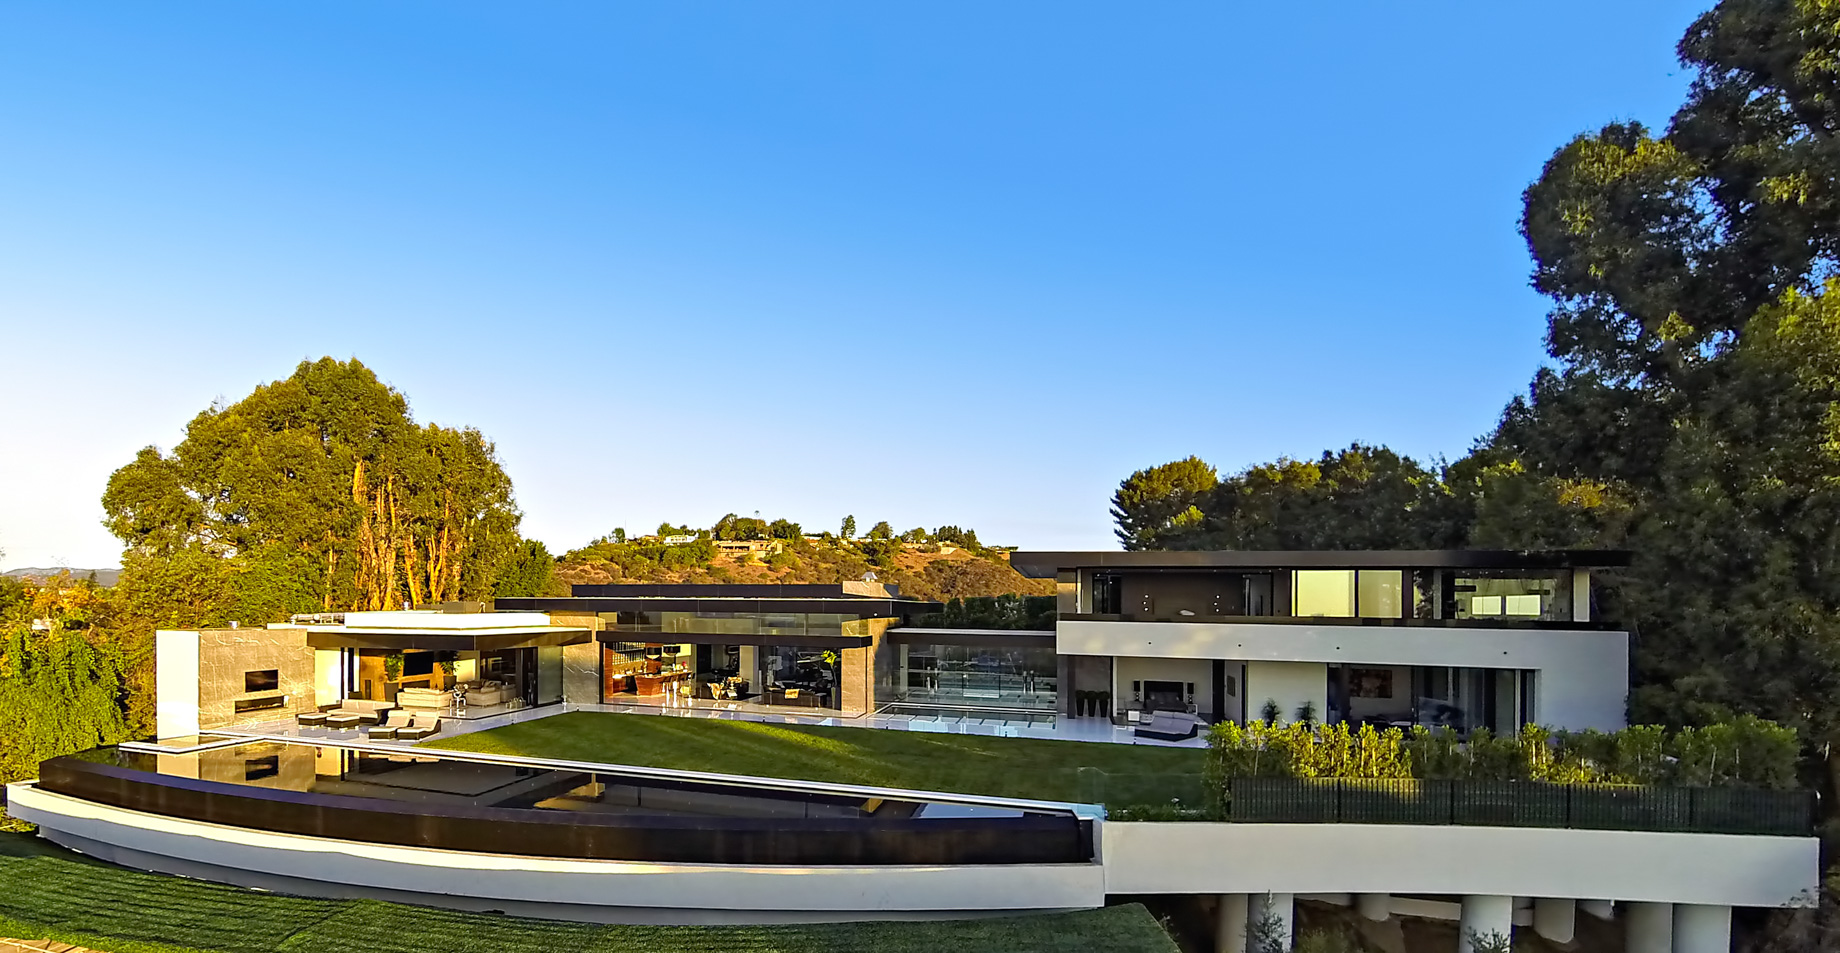 Bel Air Luxury Modern - 864 Stradella Road, Los Angeles, CA, USA